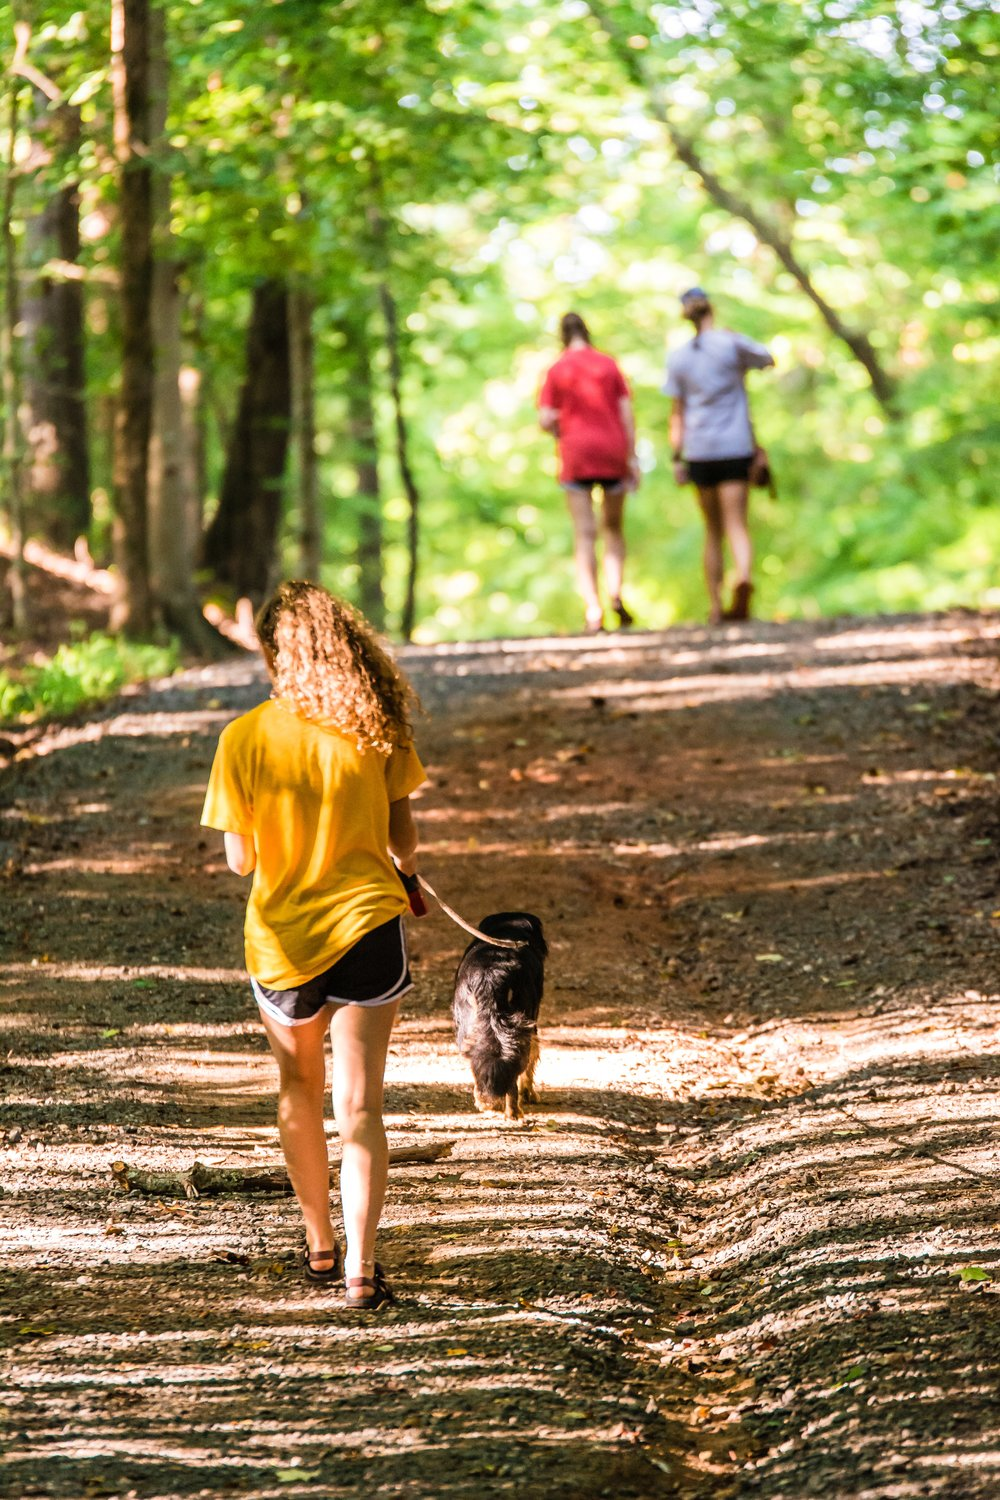 Trail Research-Photo by Carissa Rogers from Pexels.jpg